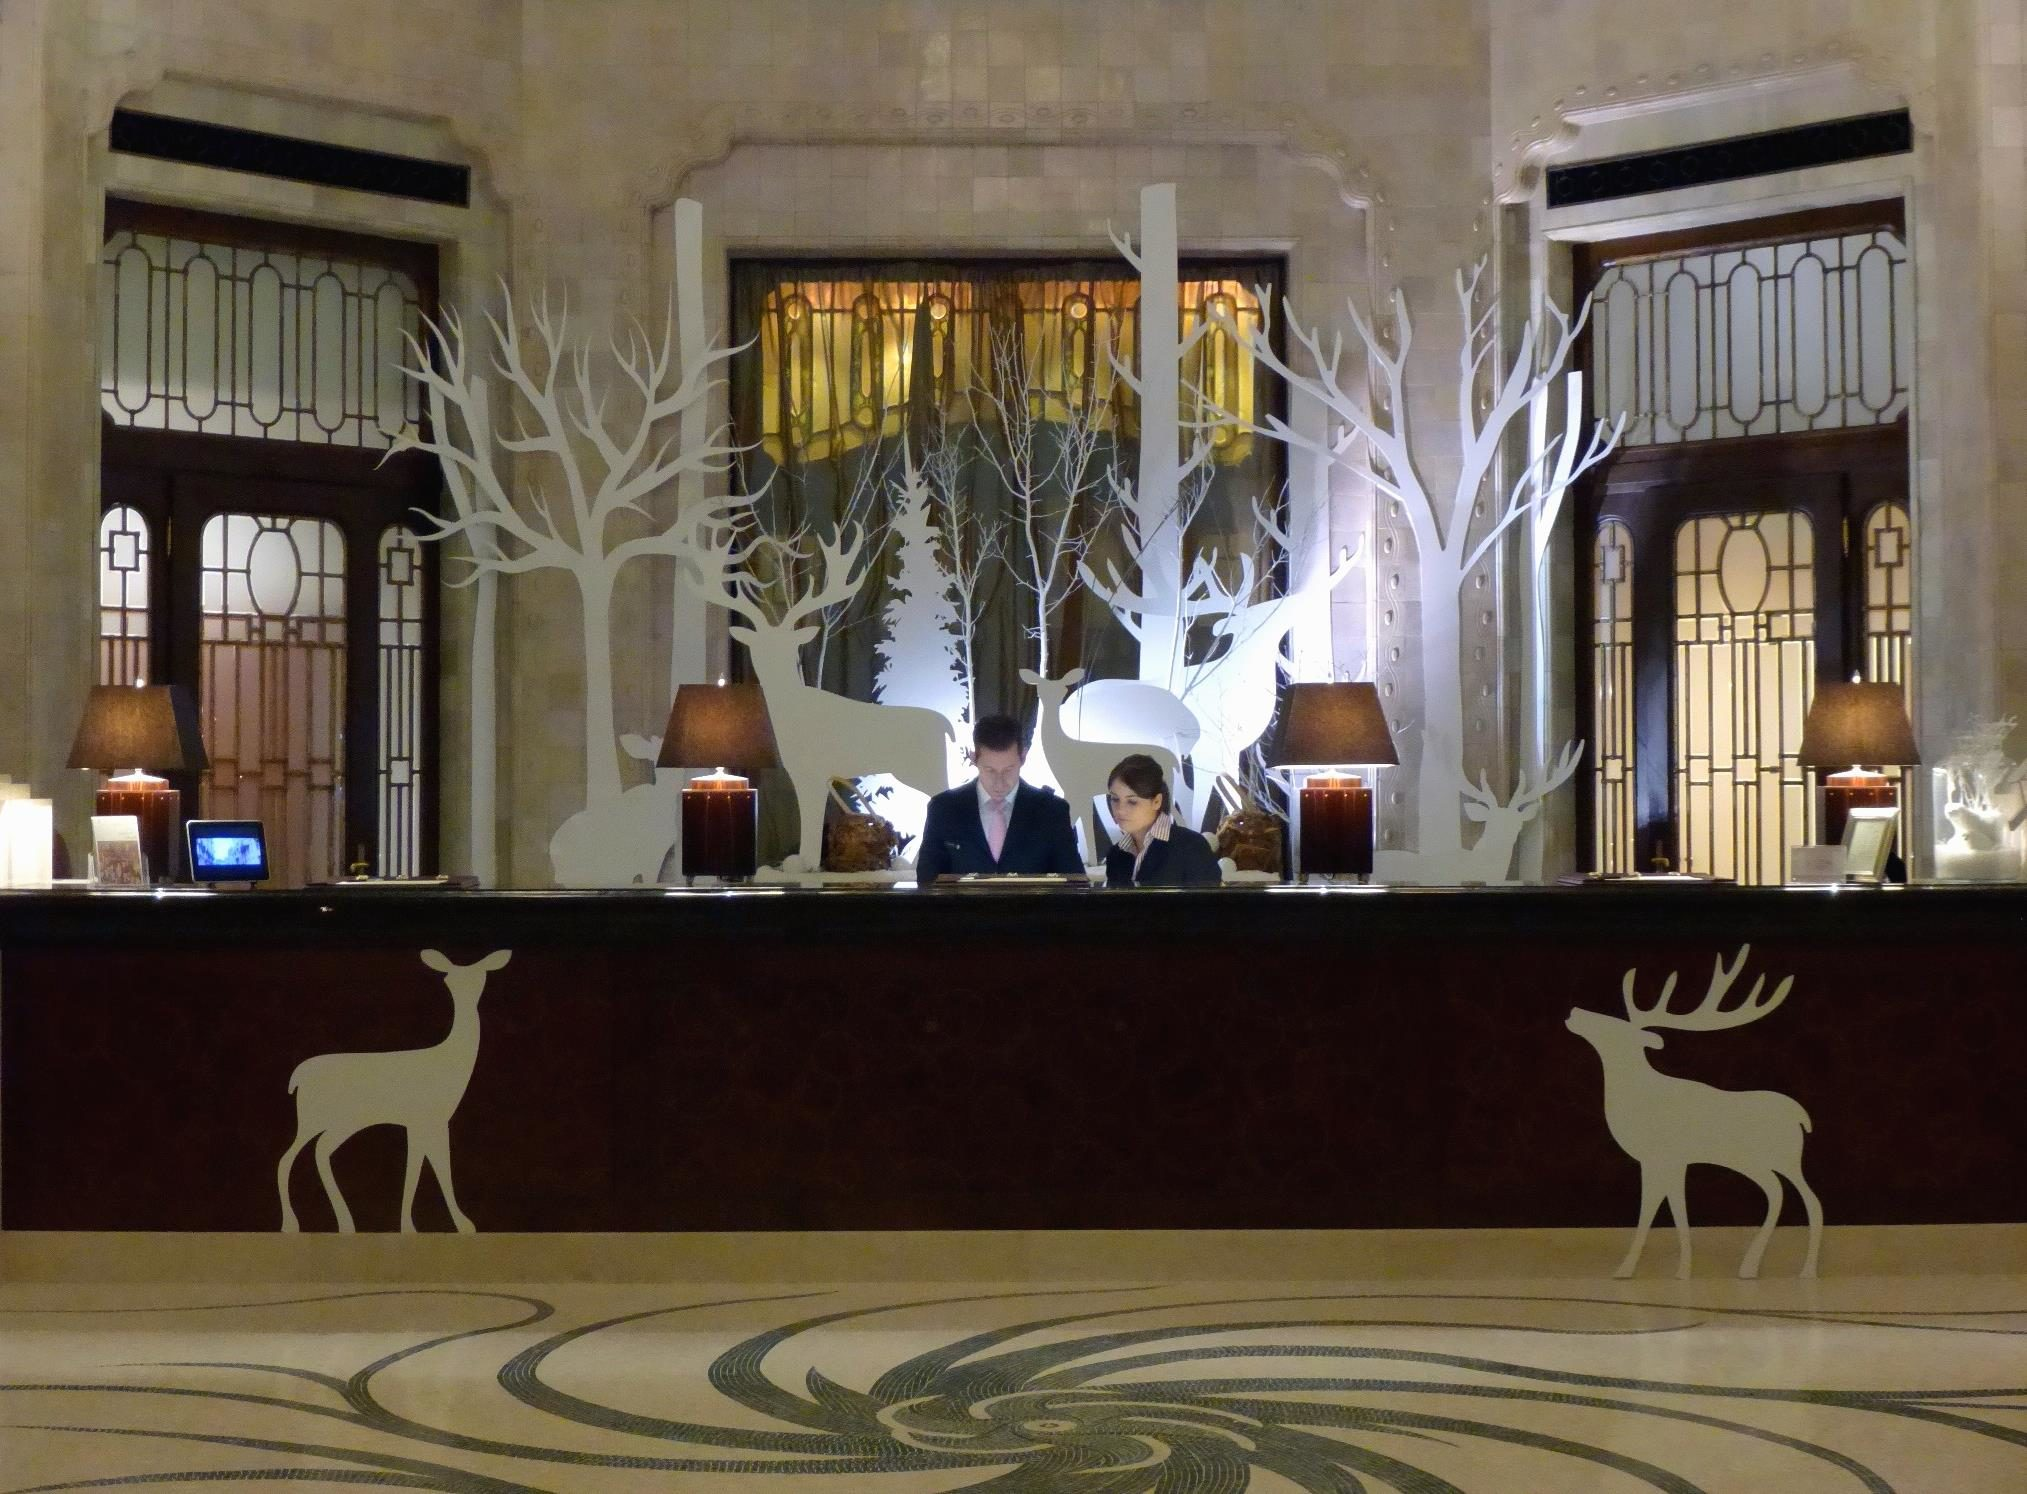 Decoration Hotel Free Picture Front Desk Decoration Winter Lamp Hotel Deer